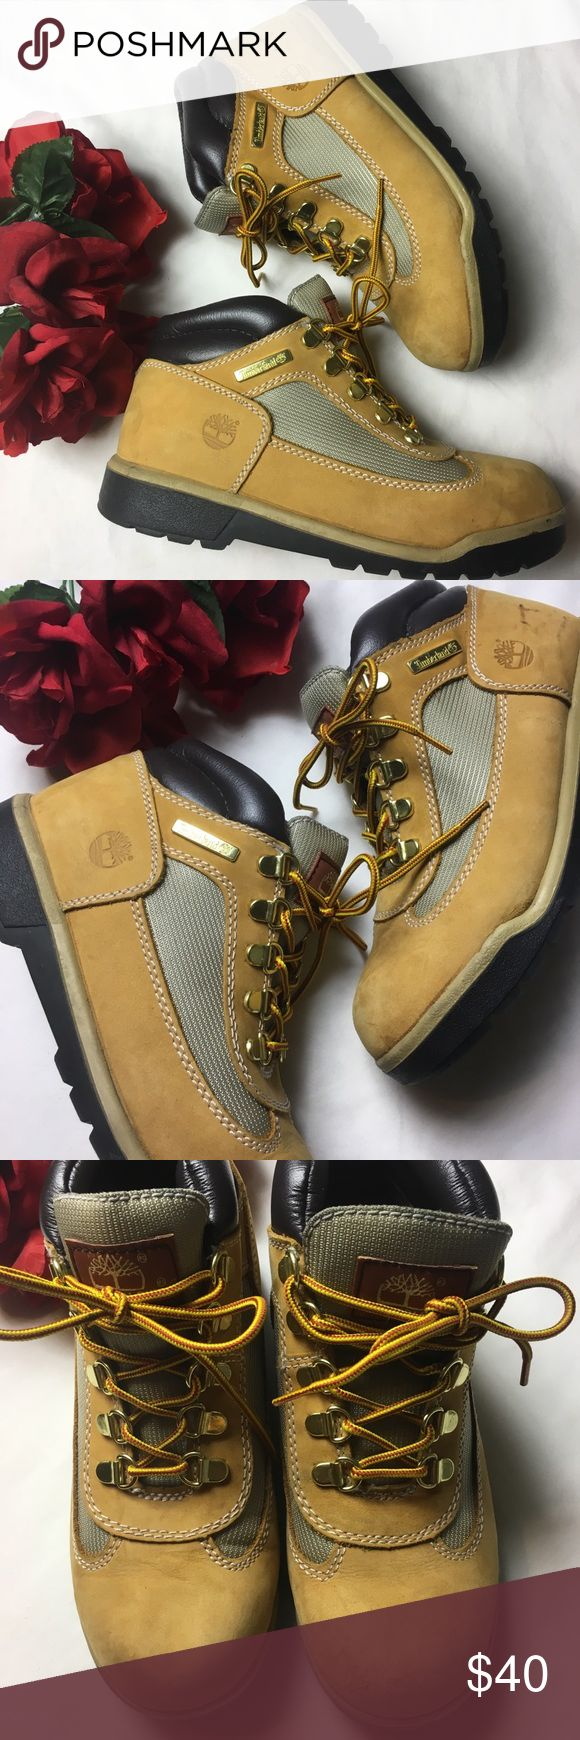 Boys timberland hikers Sz 5 Great used condition. Light spots! Very slight scuffings. Has a lot of wear left! Timberland Shoes Boots